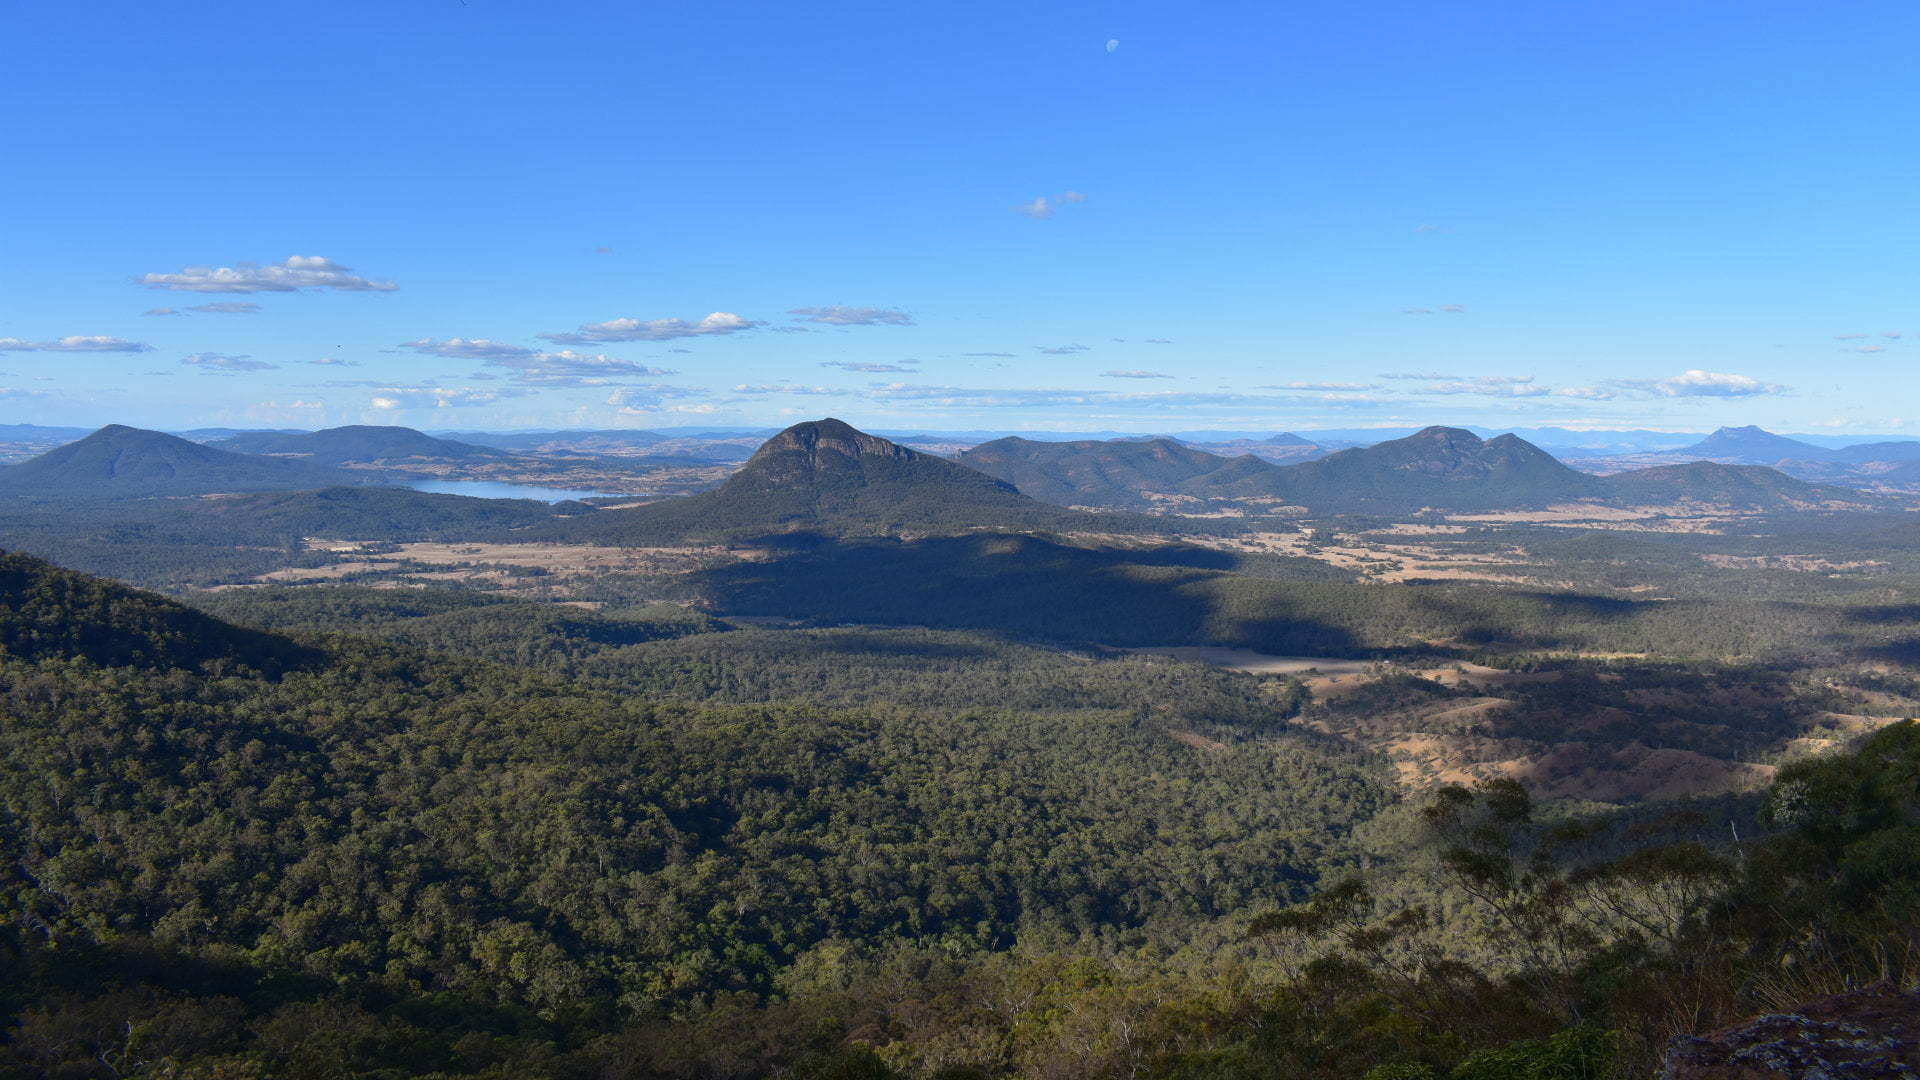 View from Governors Chair Lookout at Spicers Gap in the Main Range National Park